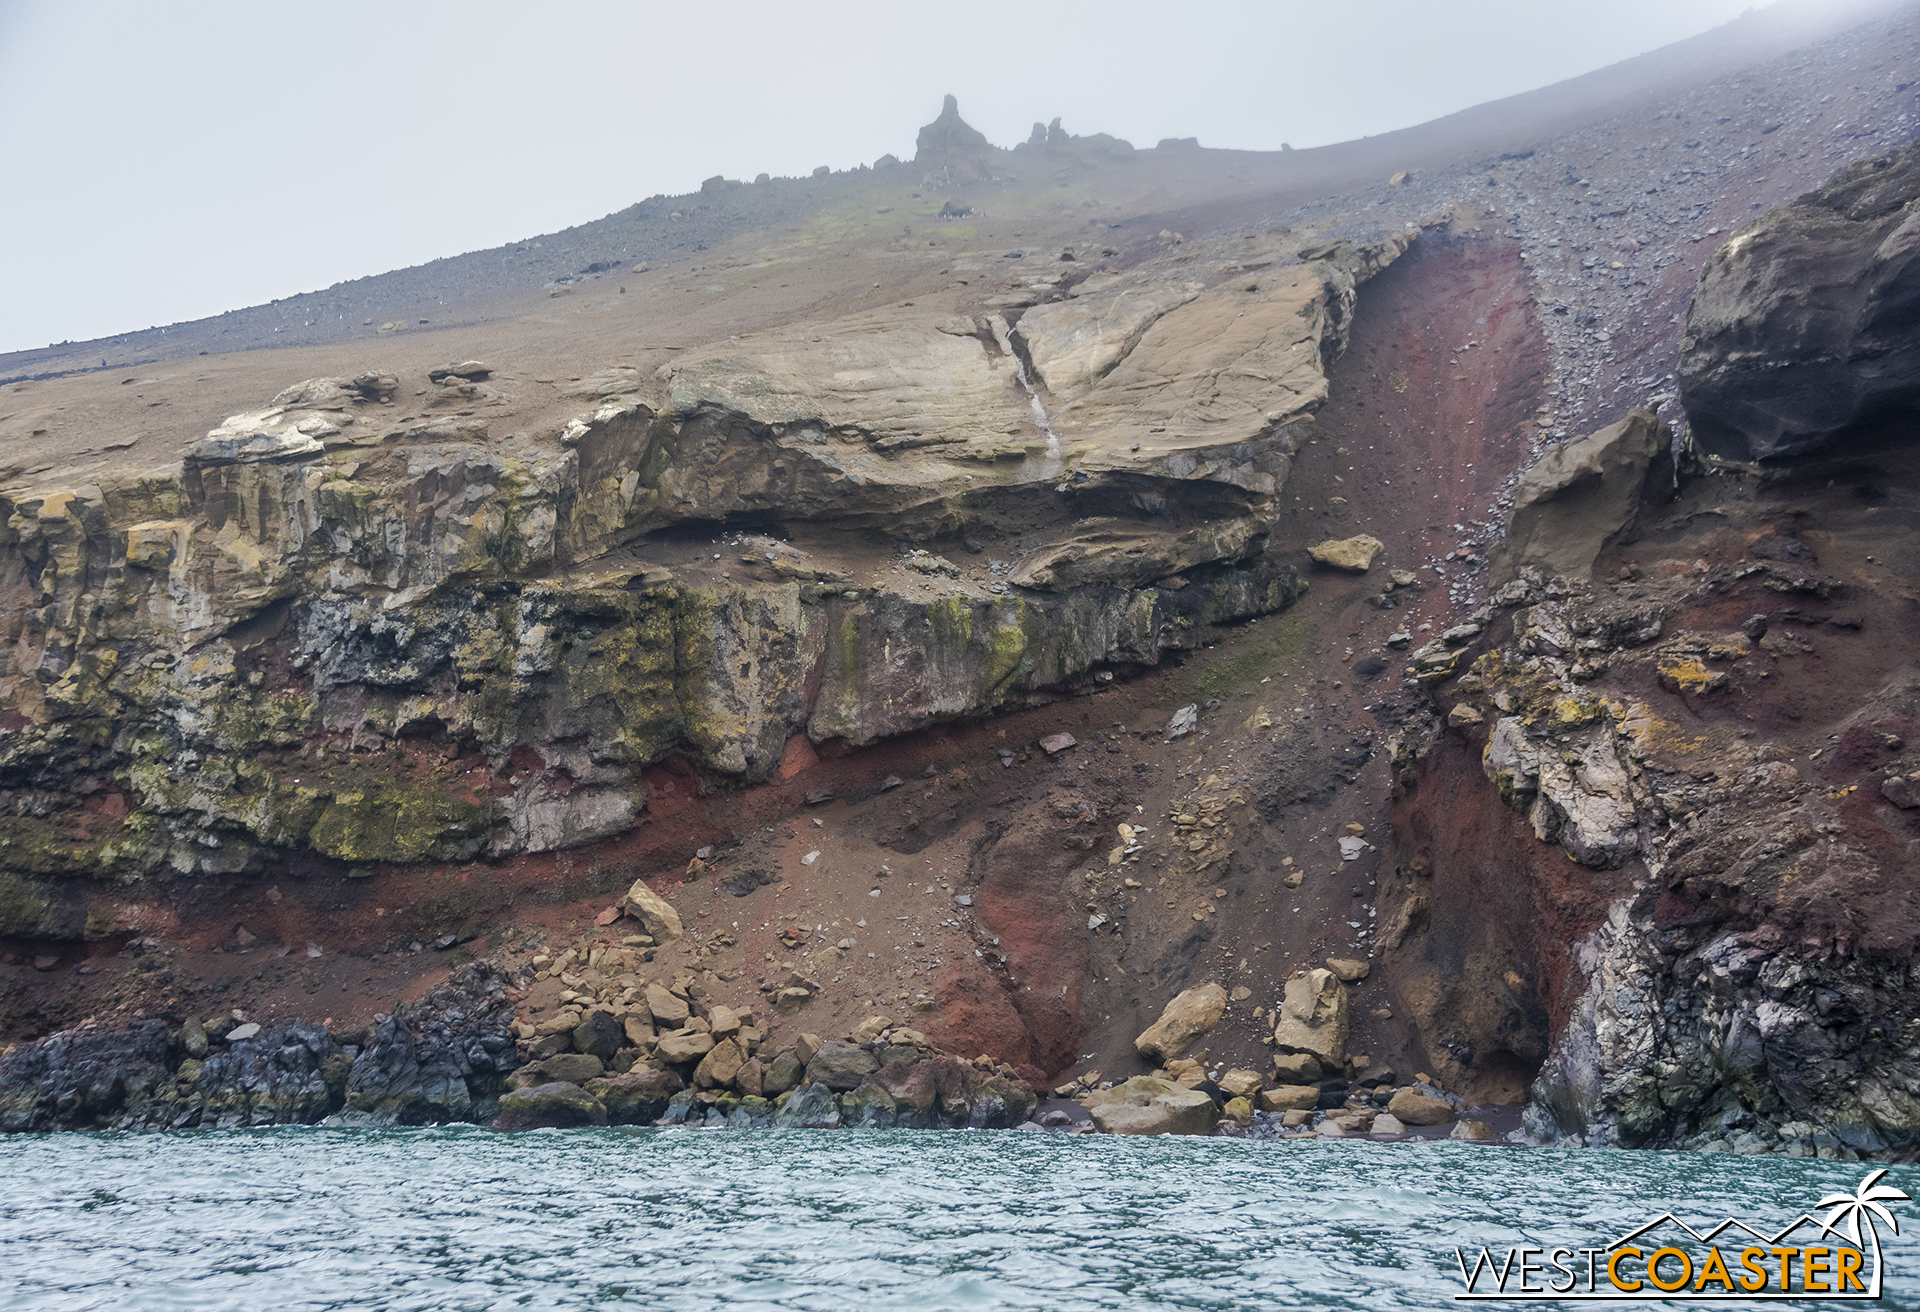 Both the green and red coloring of the rock comes from lichen.